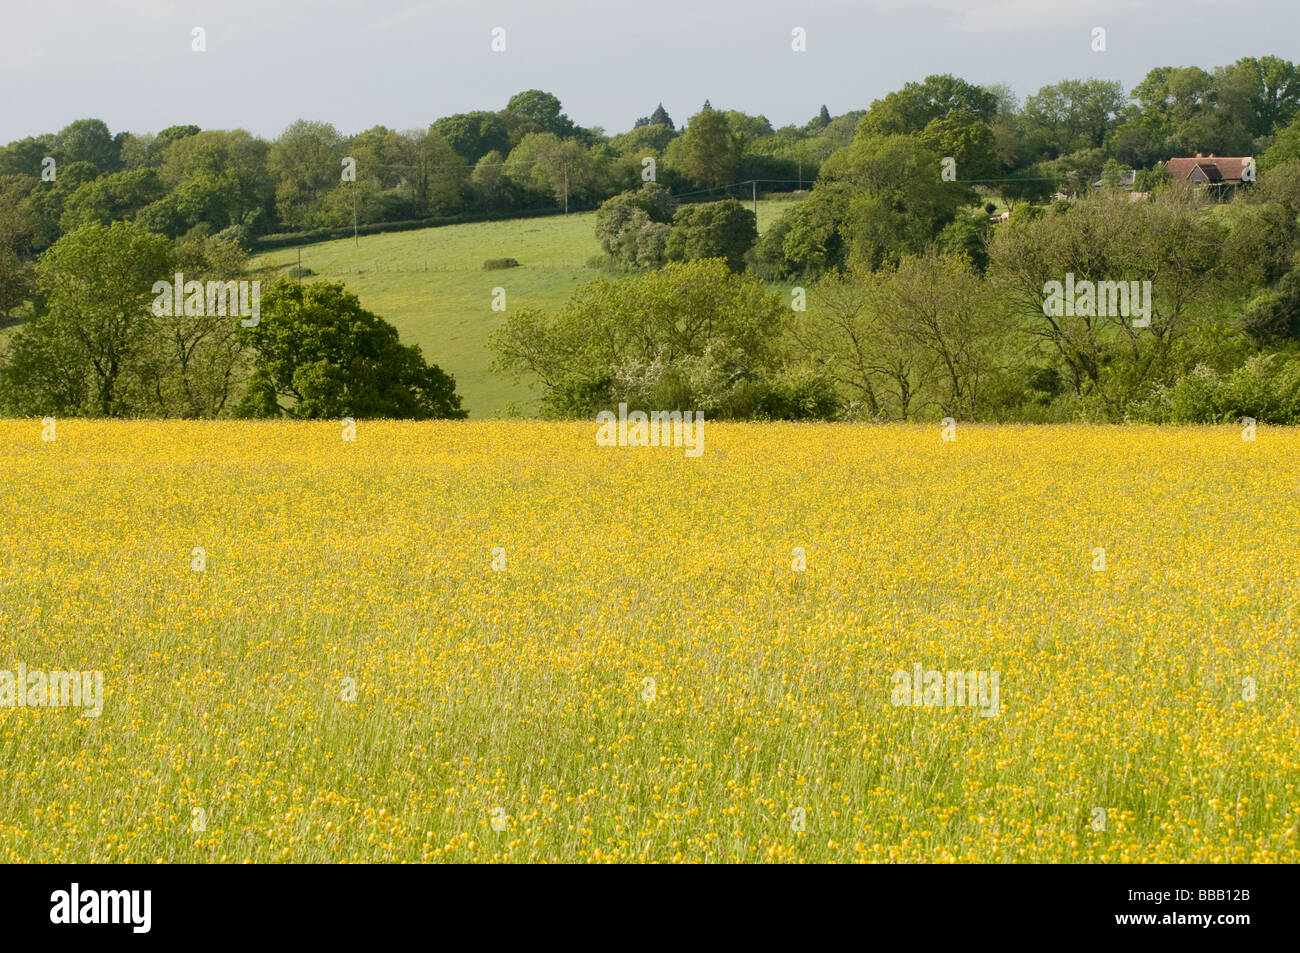 FIELD OF BUTTERCUPS IN THE CHILTERNS - Stock Image